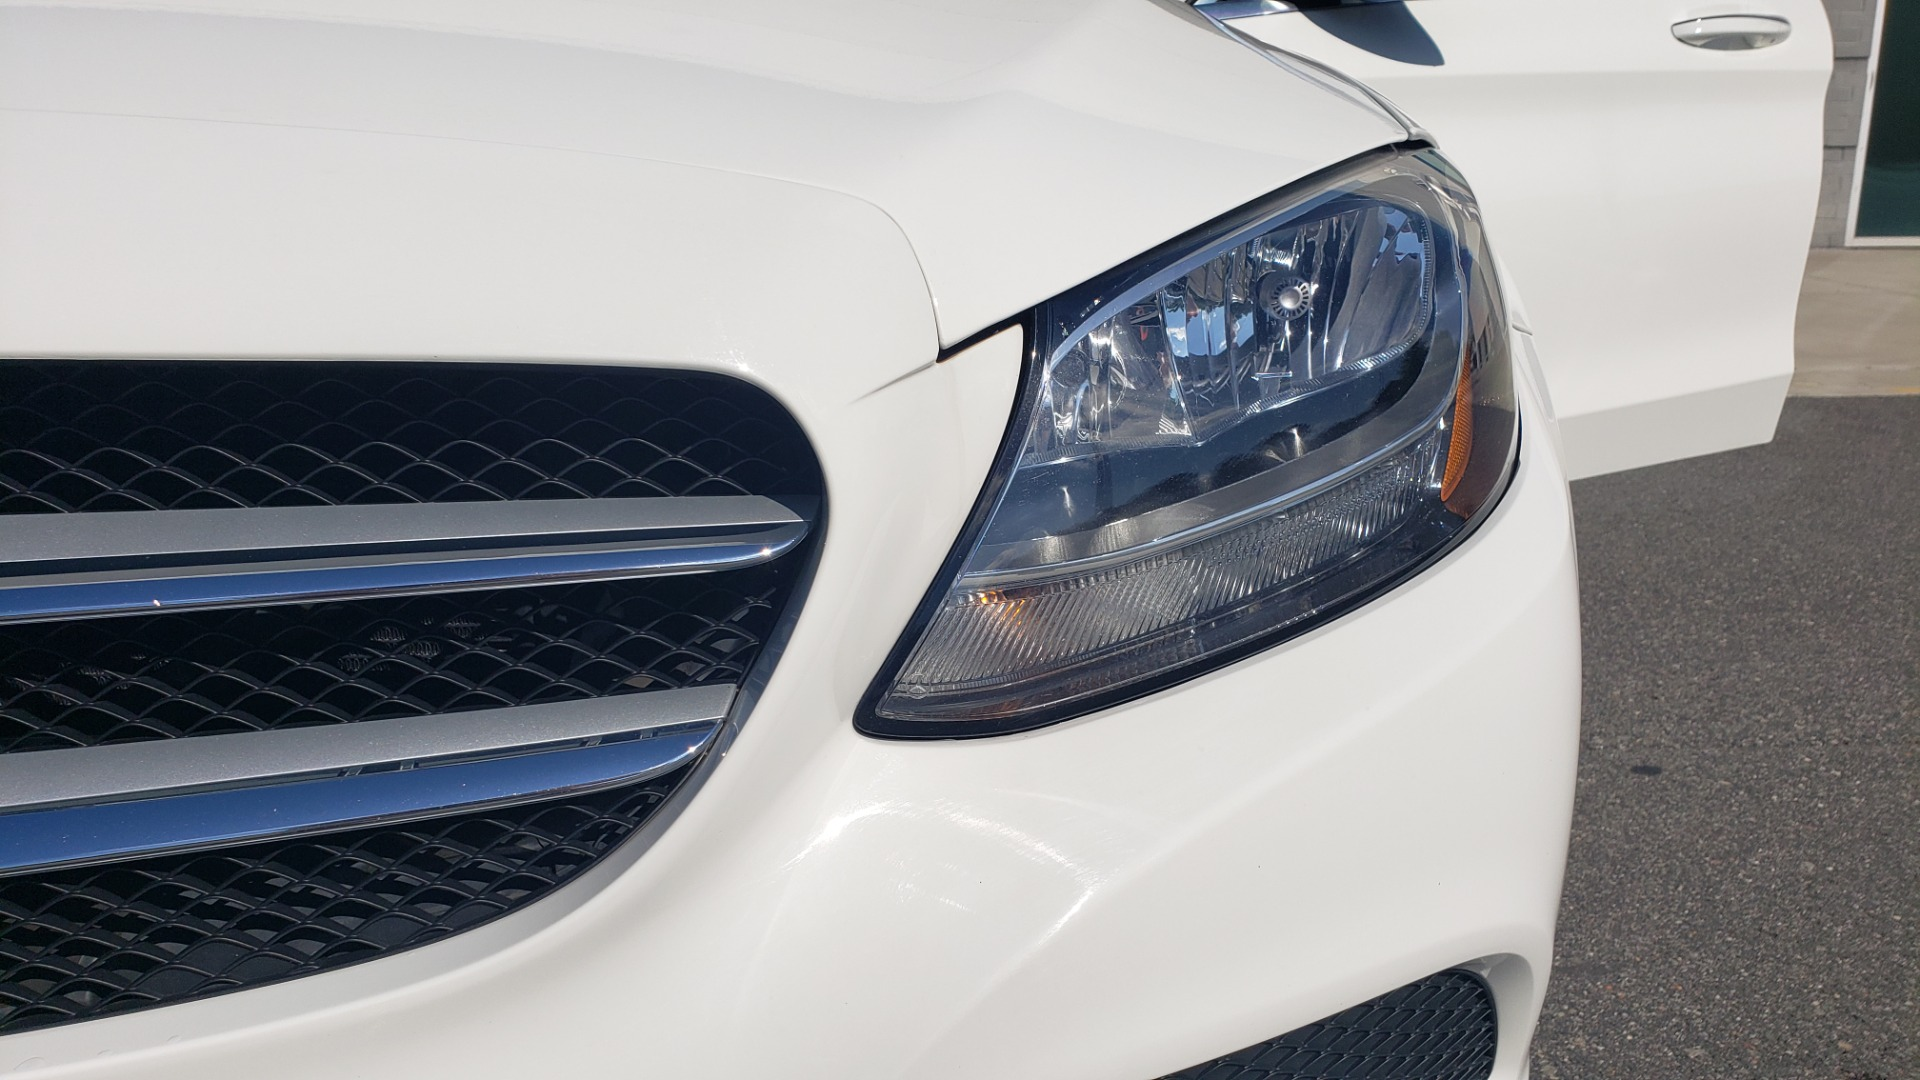 Used 2018 Mercedes-Benz C-Class C 300 4MATIC PREMIUM / APPLE CARPLAY / PANO-ROOF / REARVIEW for sale $33,795 at Formula Imports in Charlotte NC 28227 24